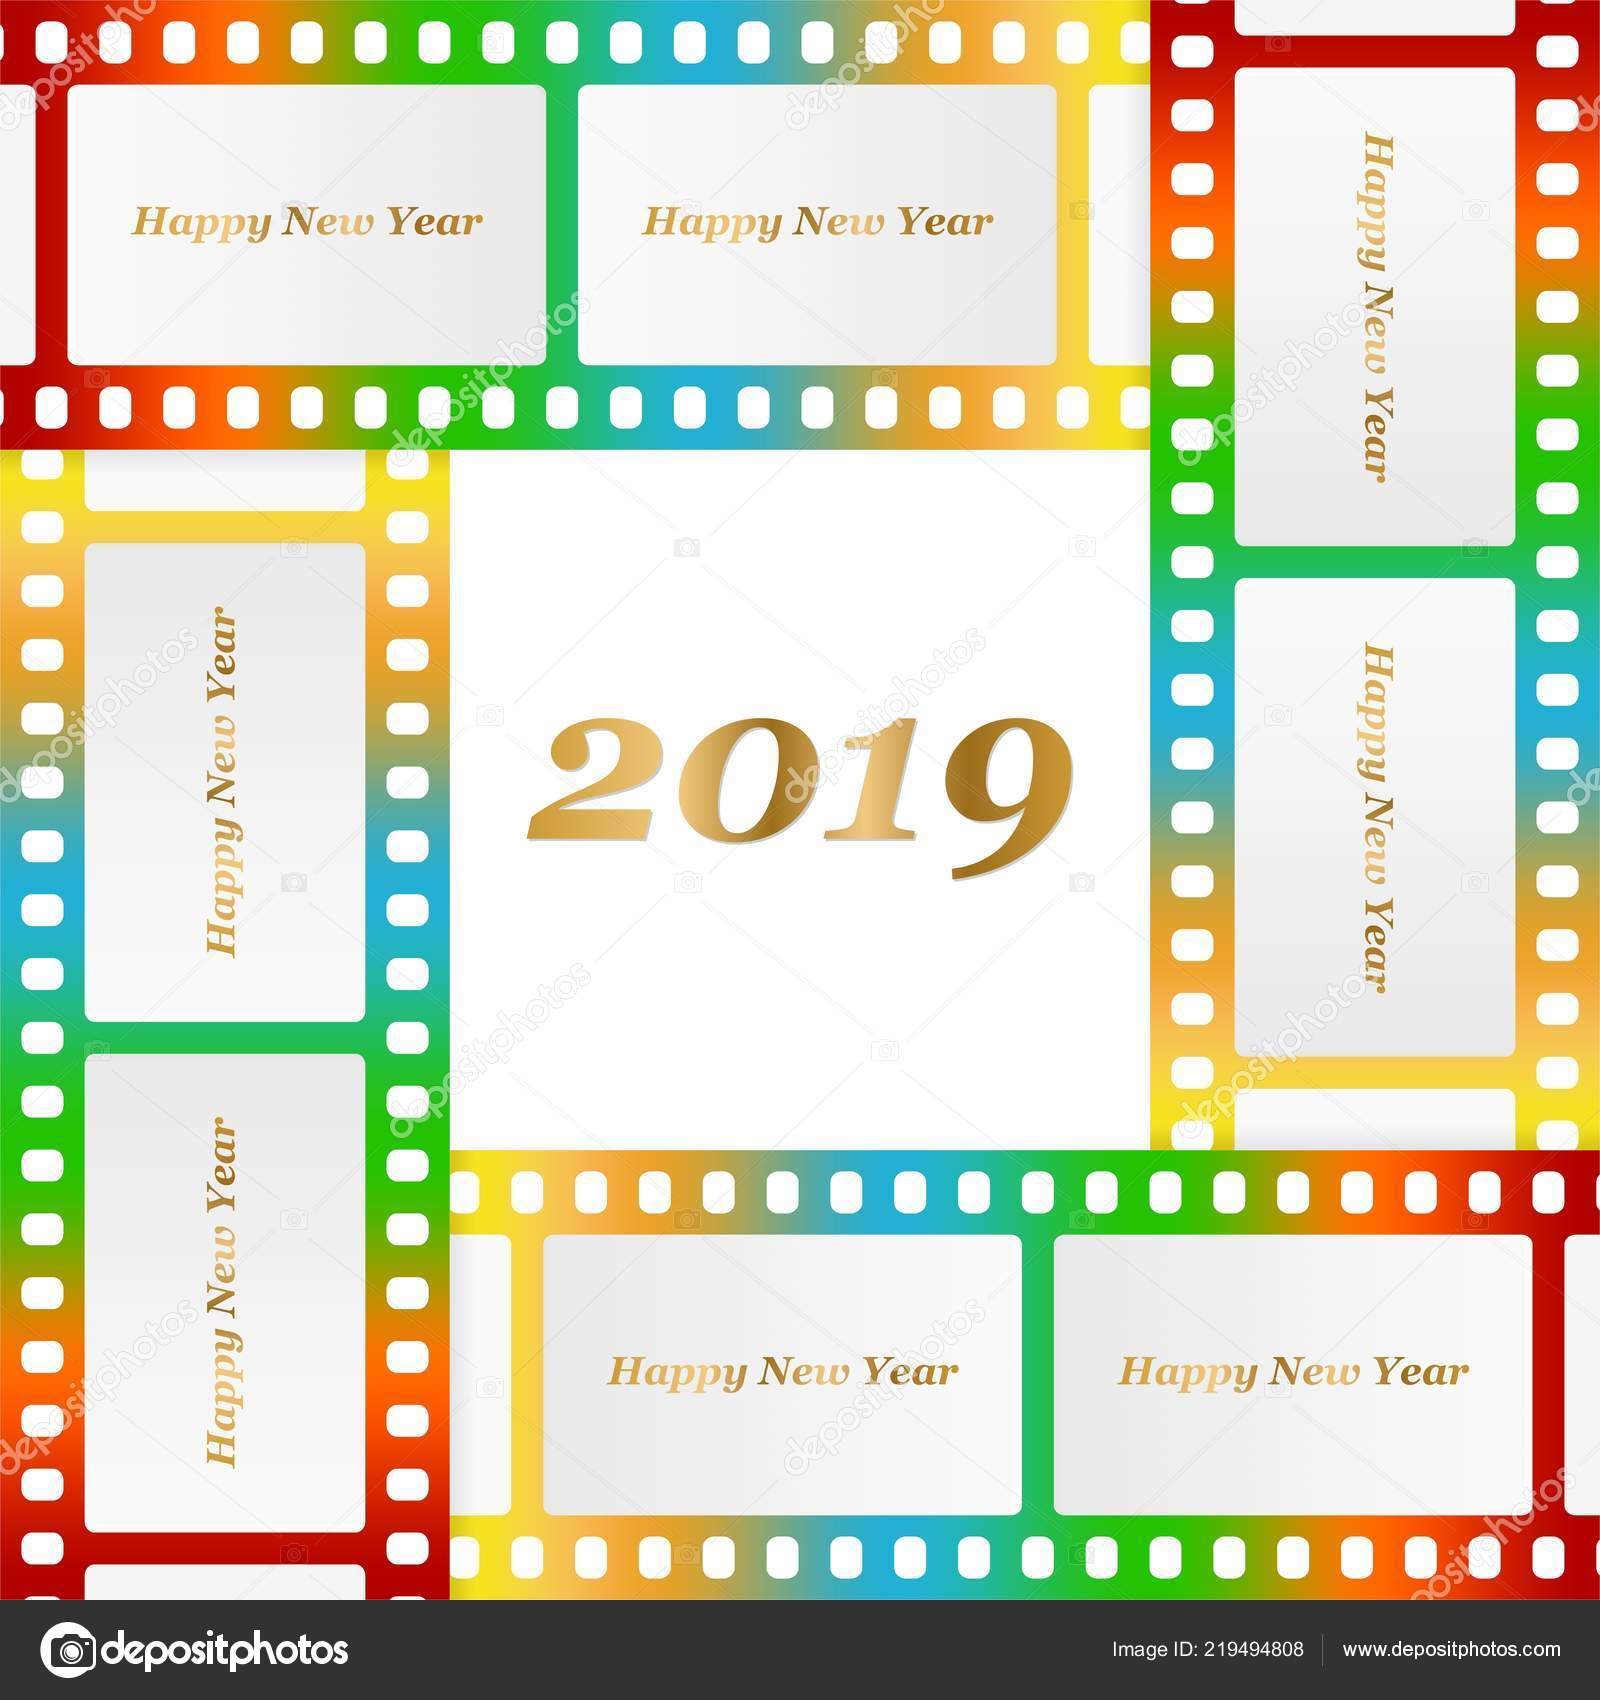 new year greetings for 2019 with colorful blank film and photographic window with golden inscription happy new year and number 2019 on a background of color